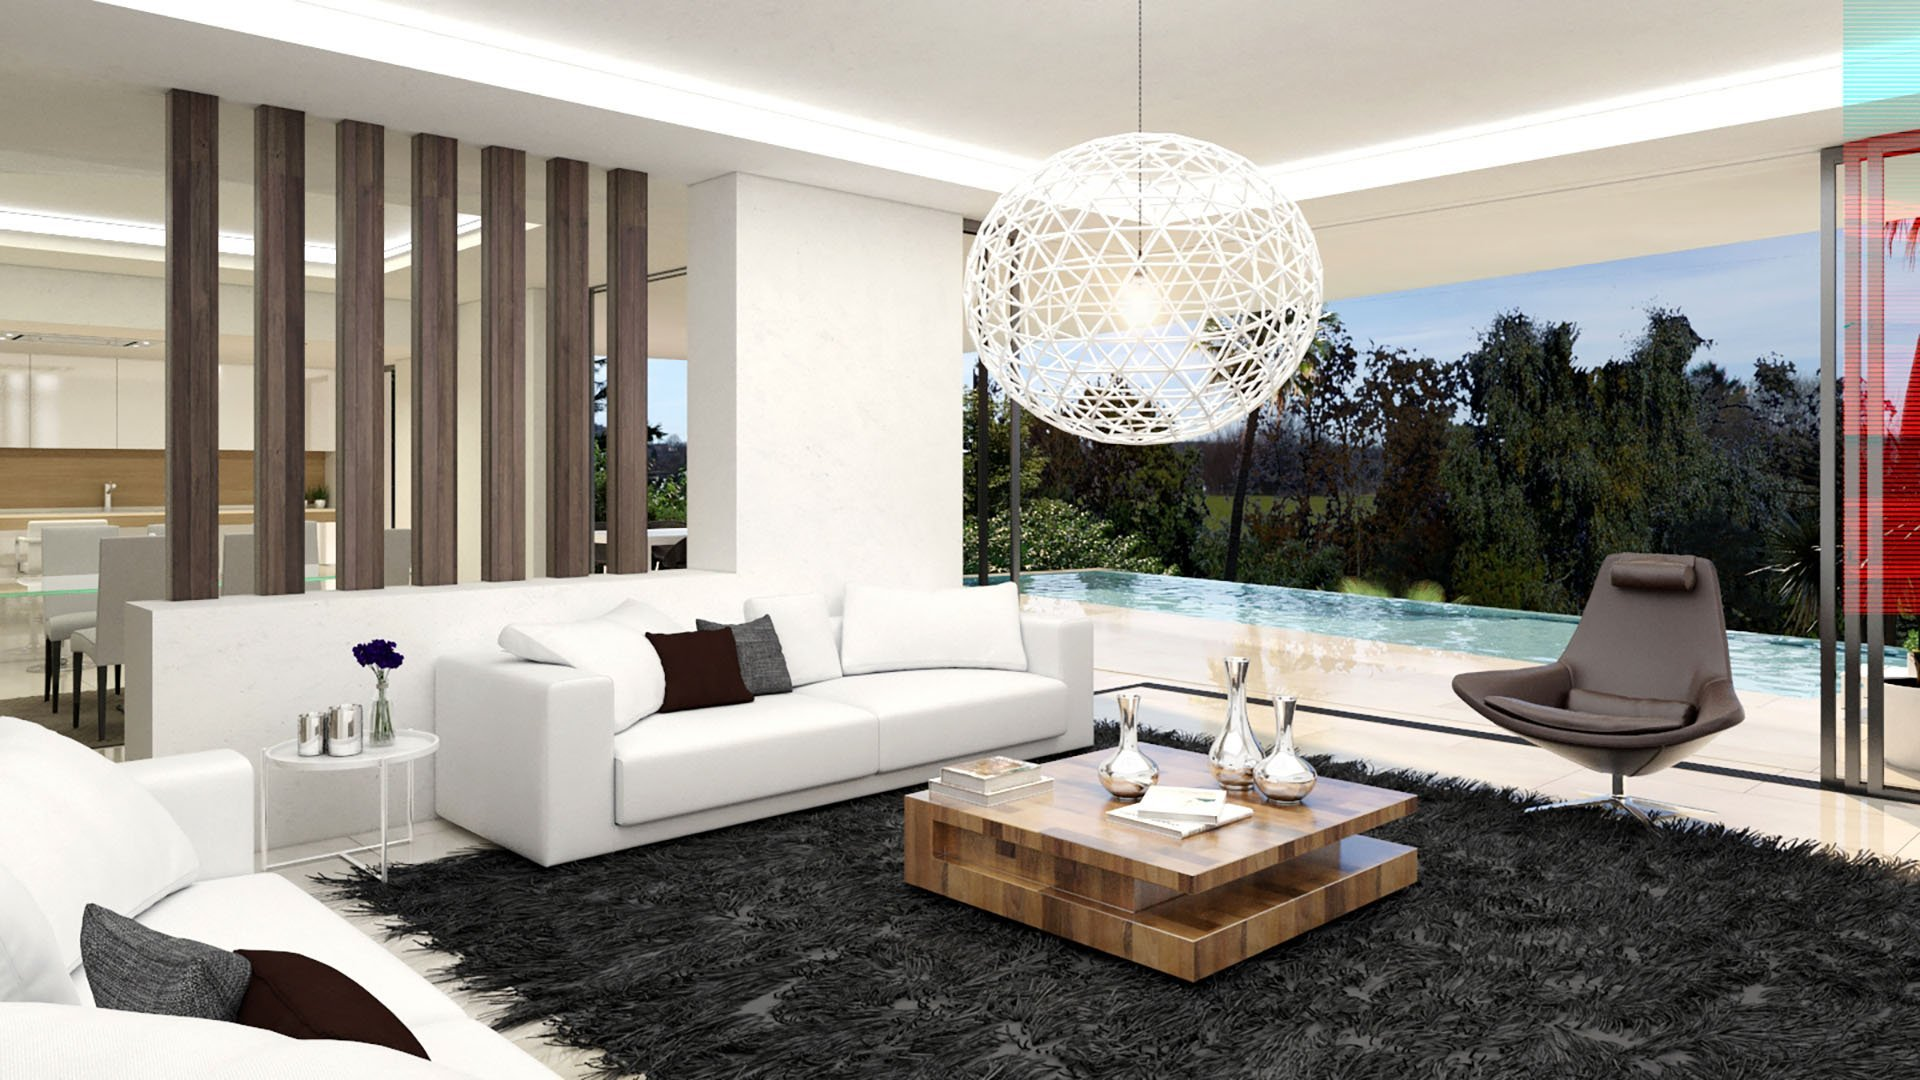 Oasis 8: Nicely situated contemporary villas for a competitive price